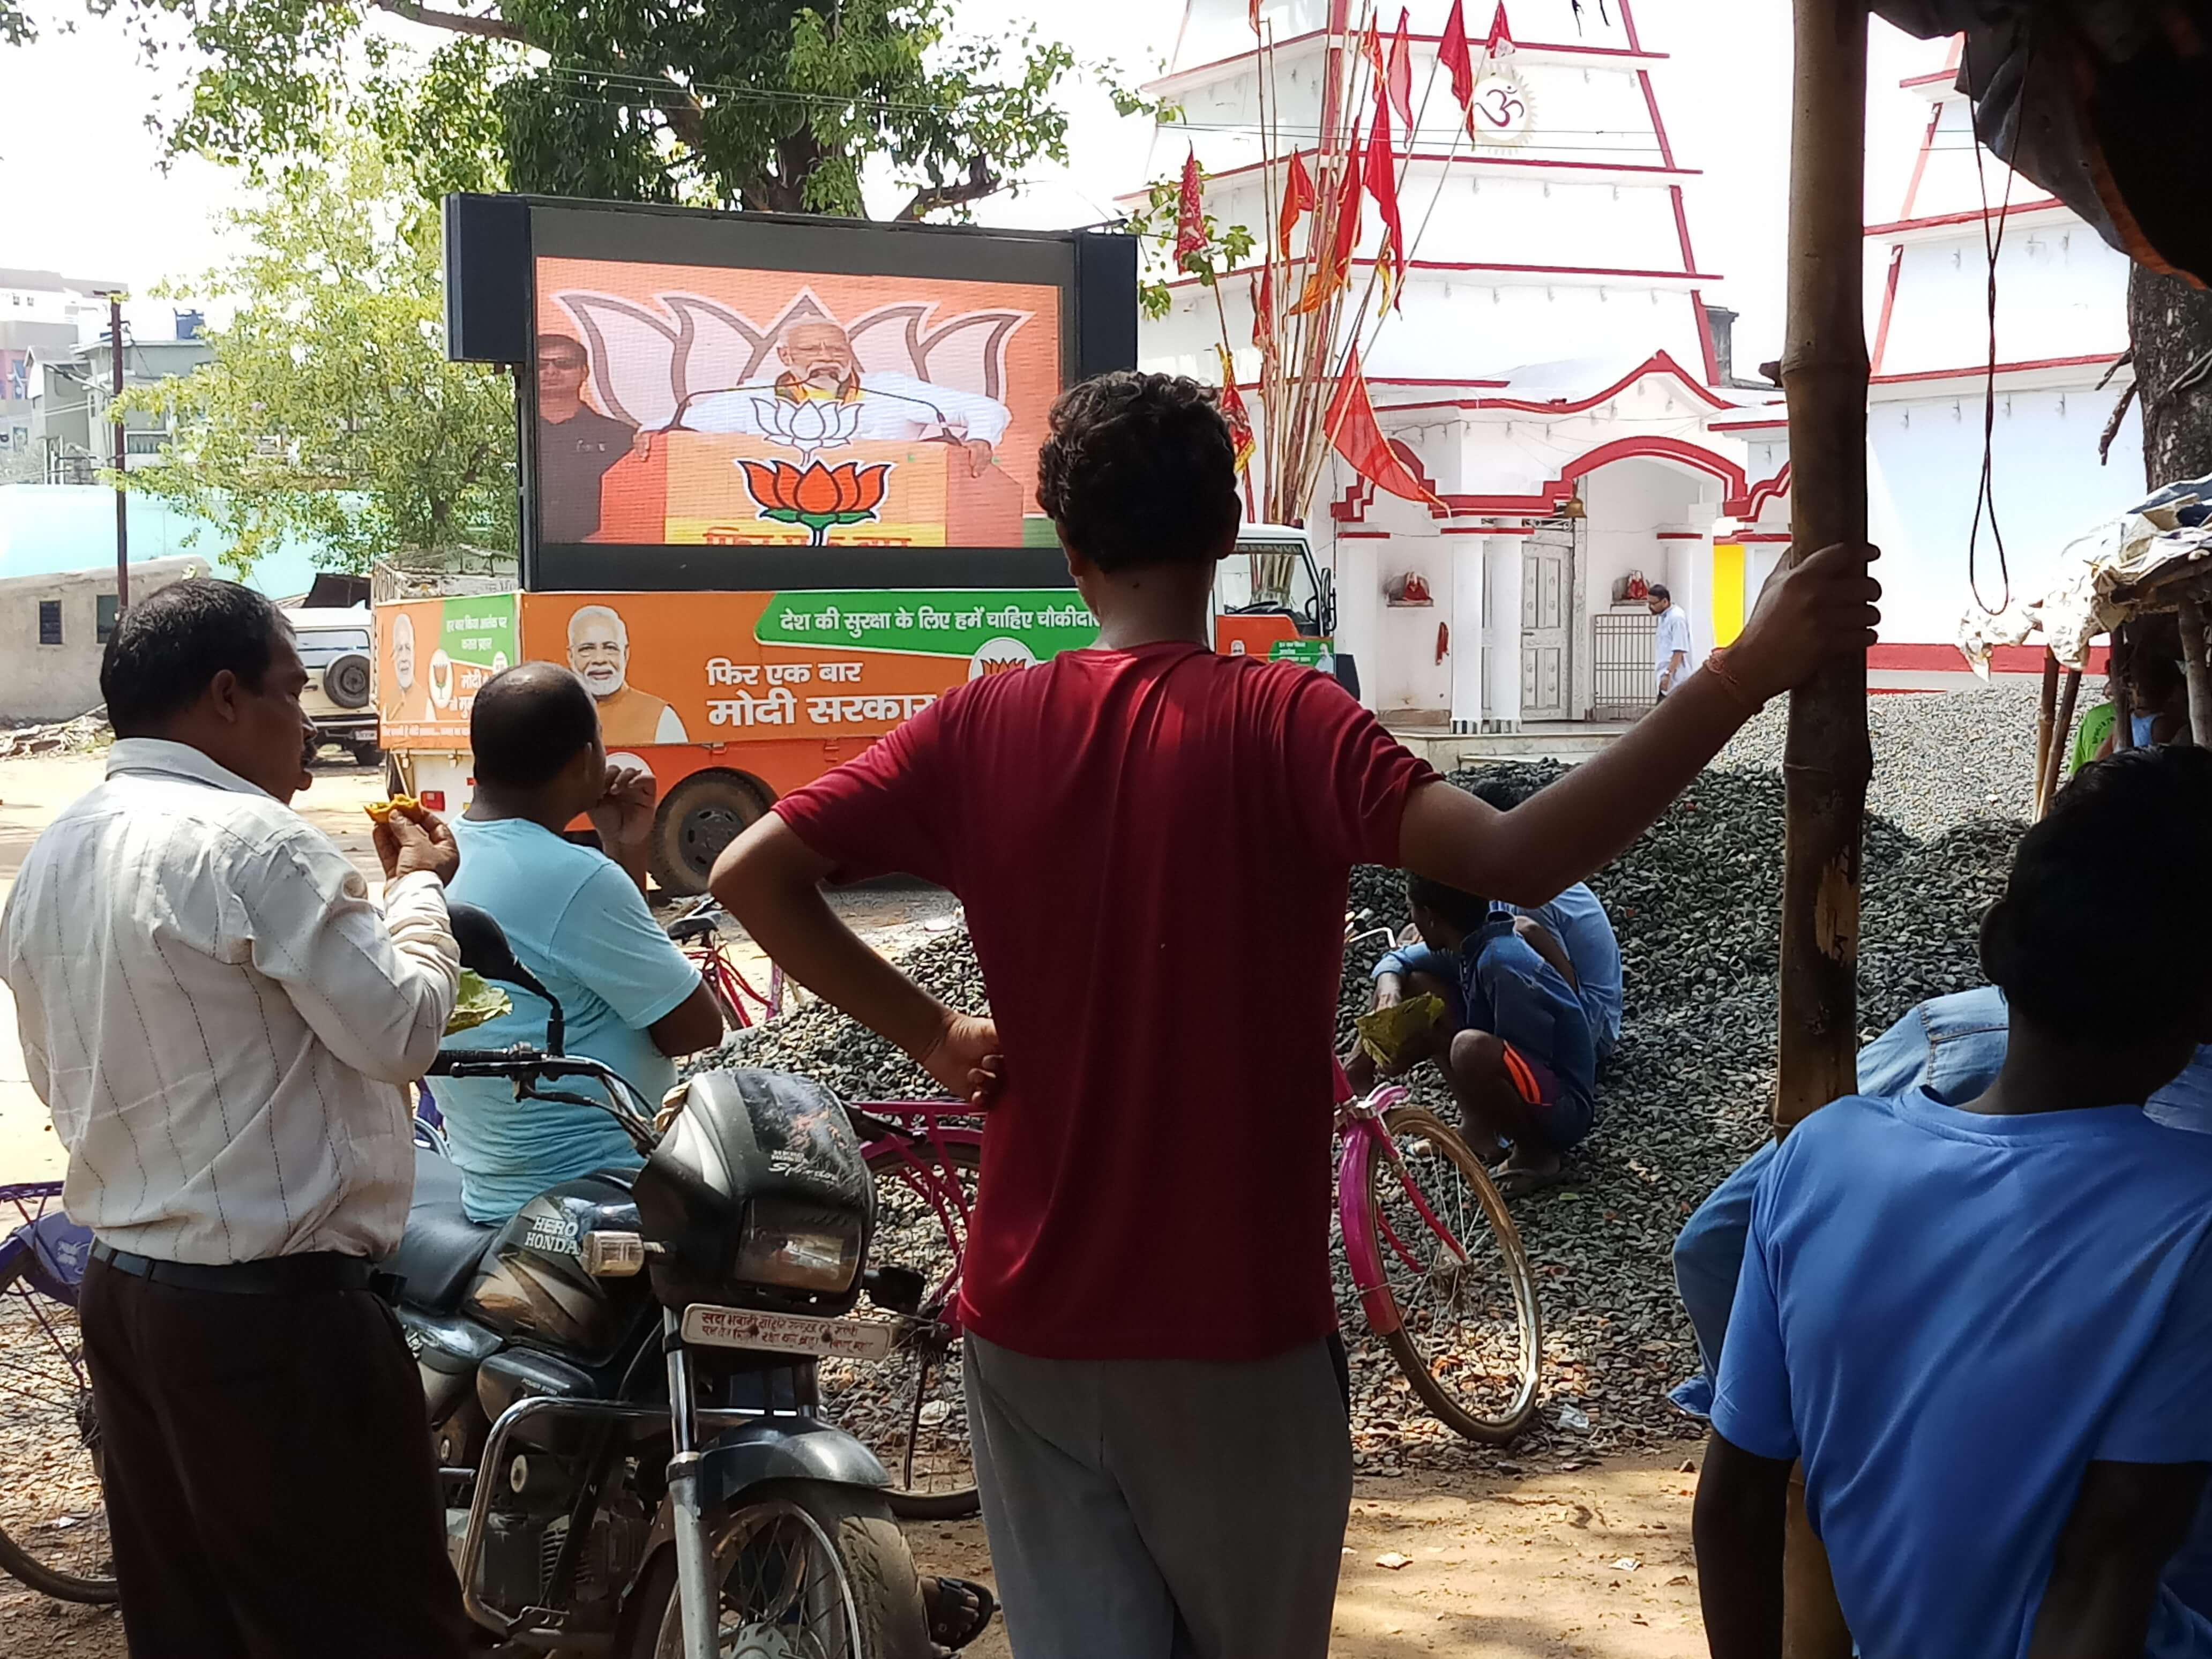 33b61e8462 Jharkhand is witnessing a silent but an intense religious war between the  RSS, the Sarna tribals and church.